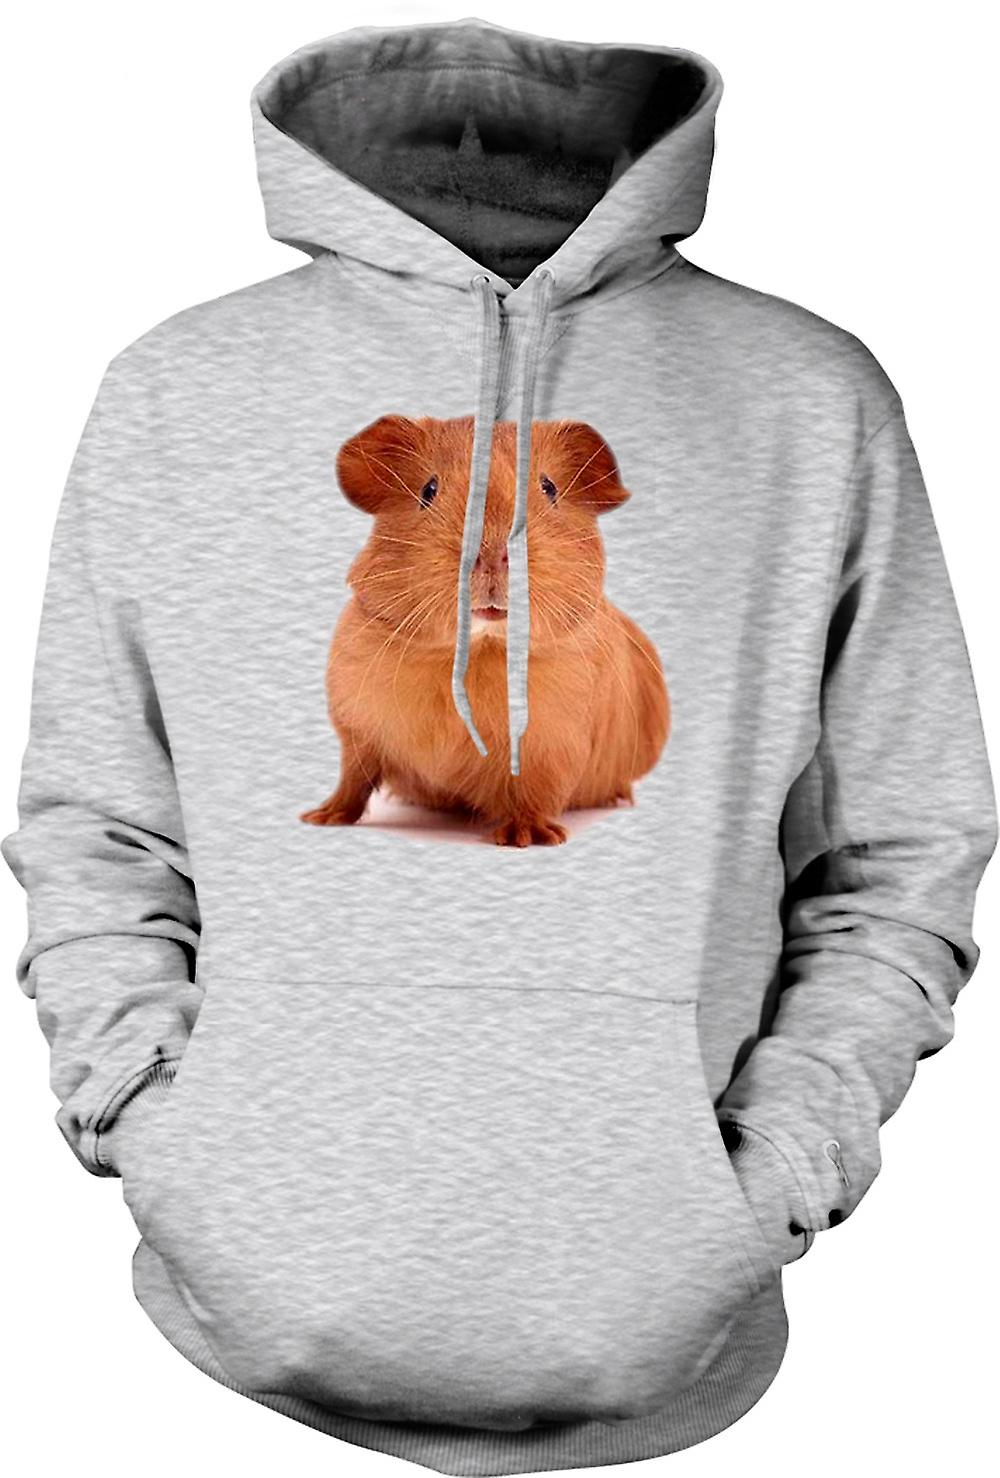 Mens Hoodie - Guinea Pig Brown - Cute Pet